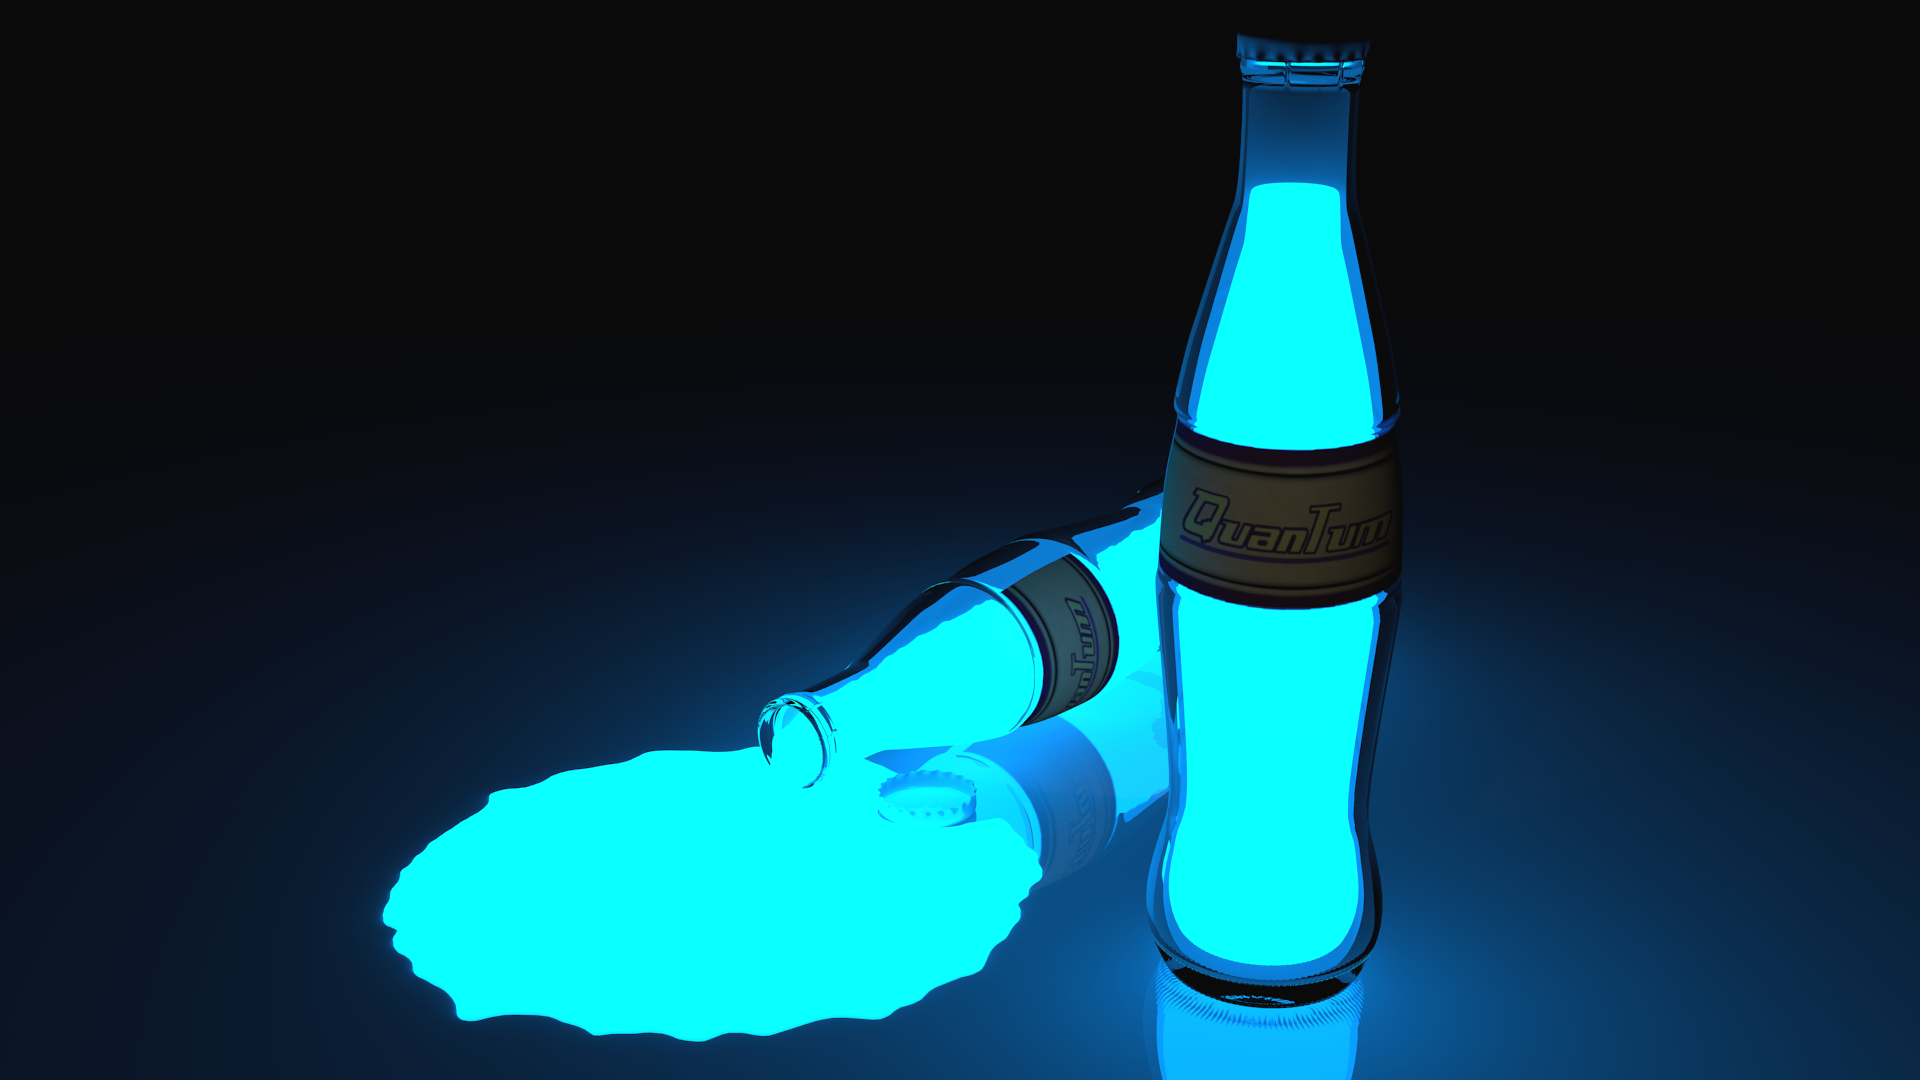 nuka cola lamp photo - 3